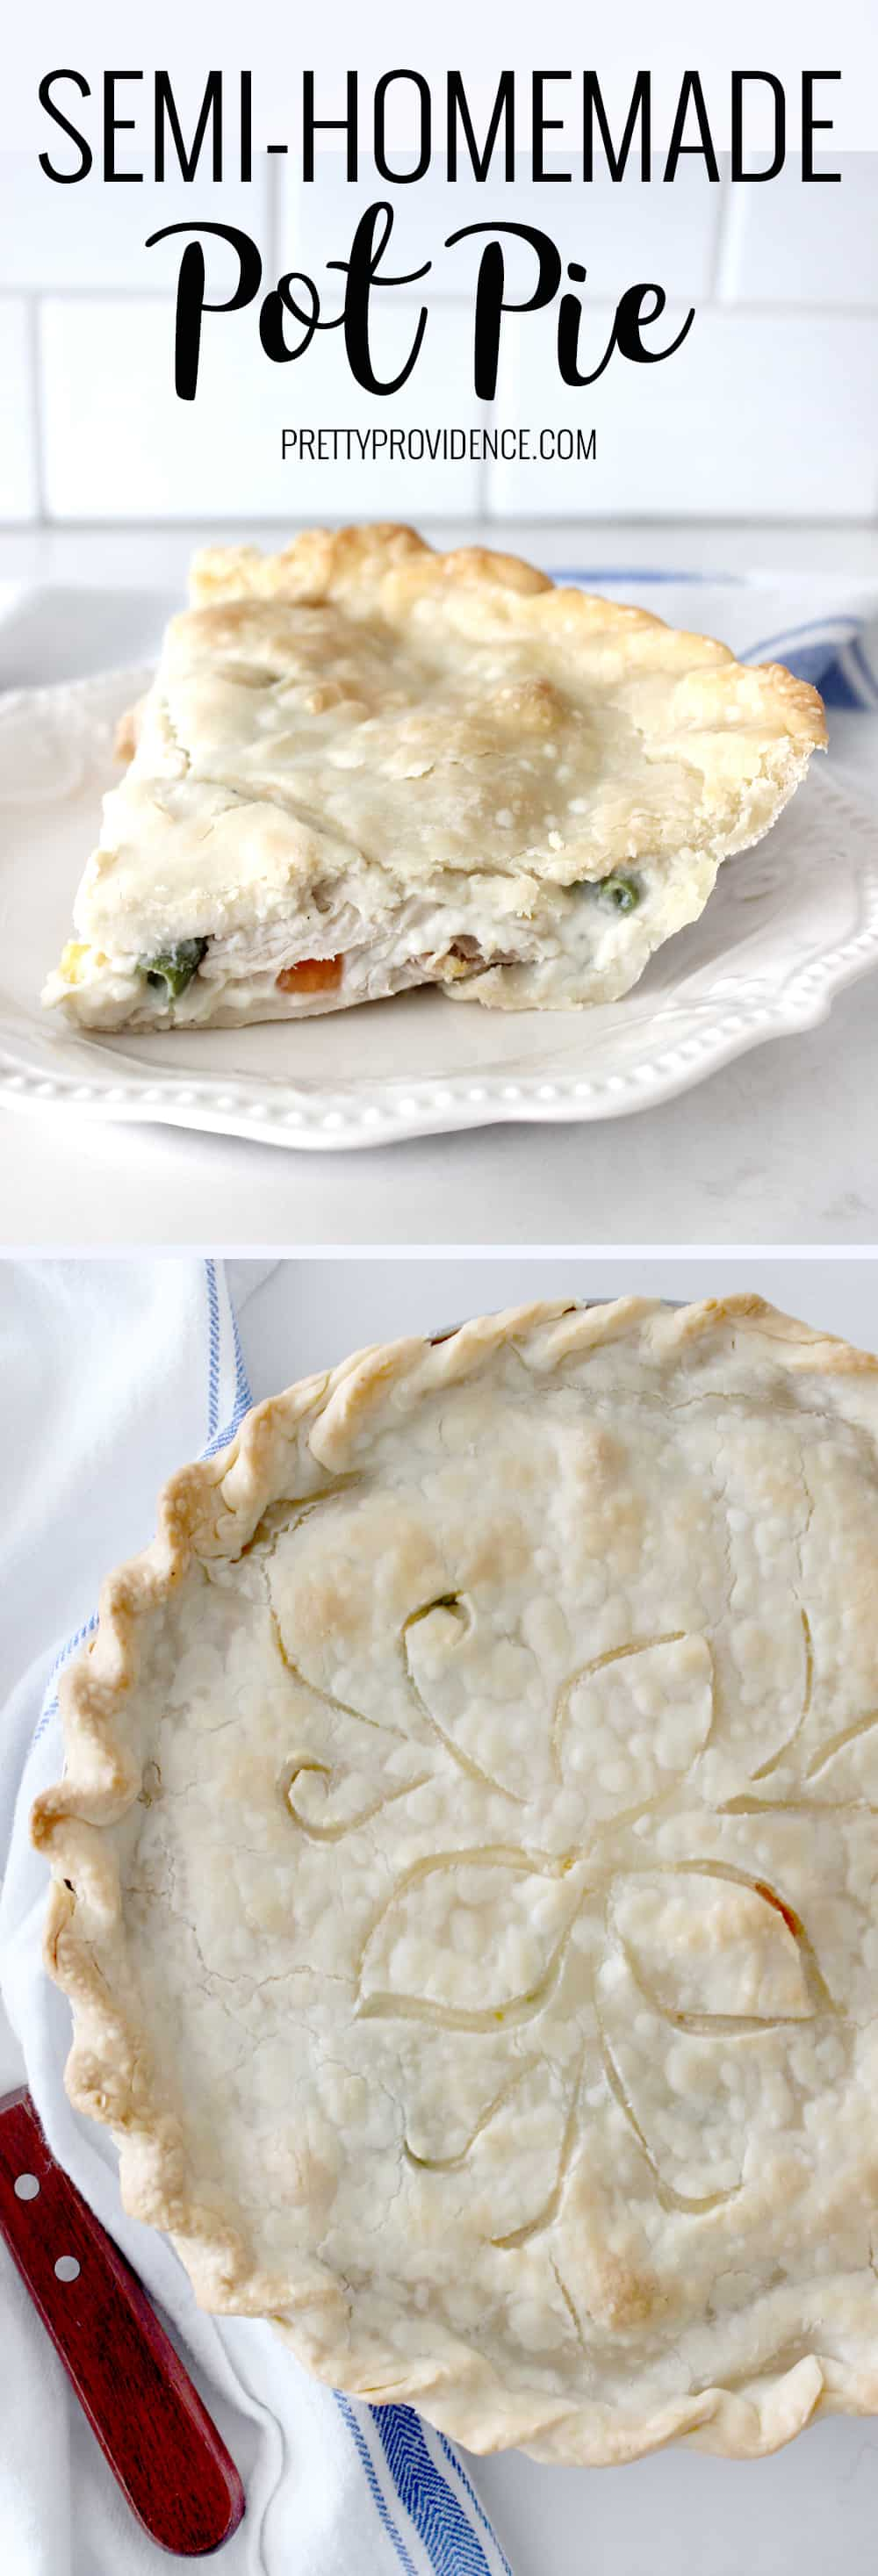 You will love this semi-homemade pot pie! It has all the hearty delicious flavors a homemade pot pie has, with minimal effort!